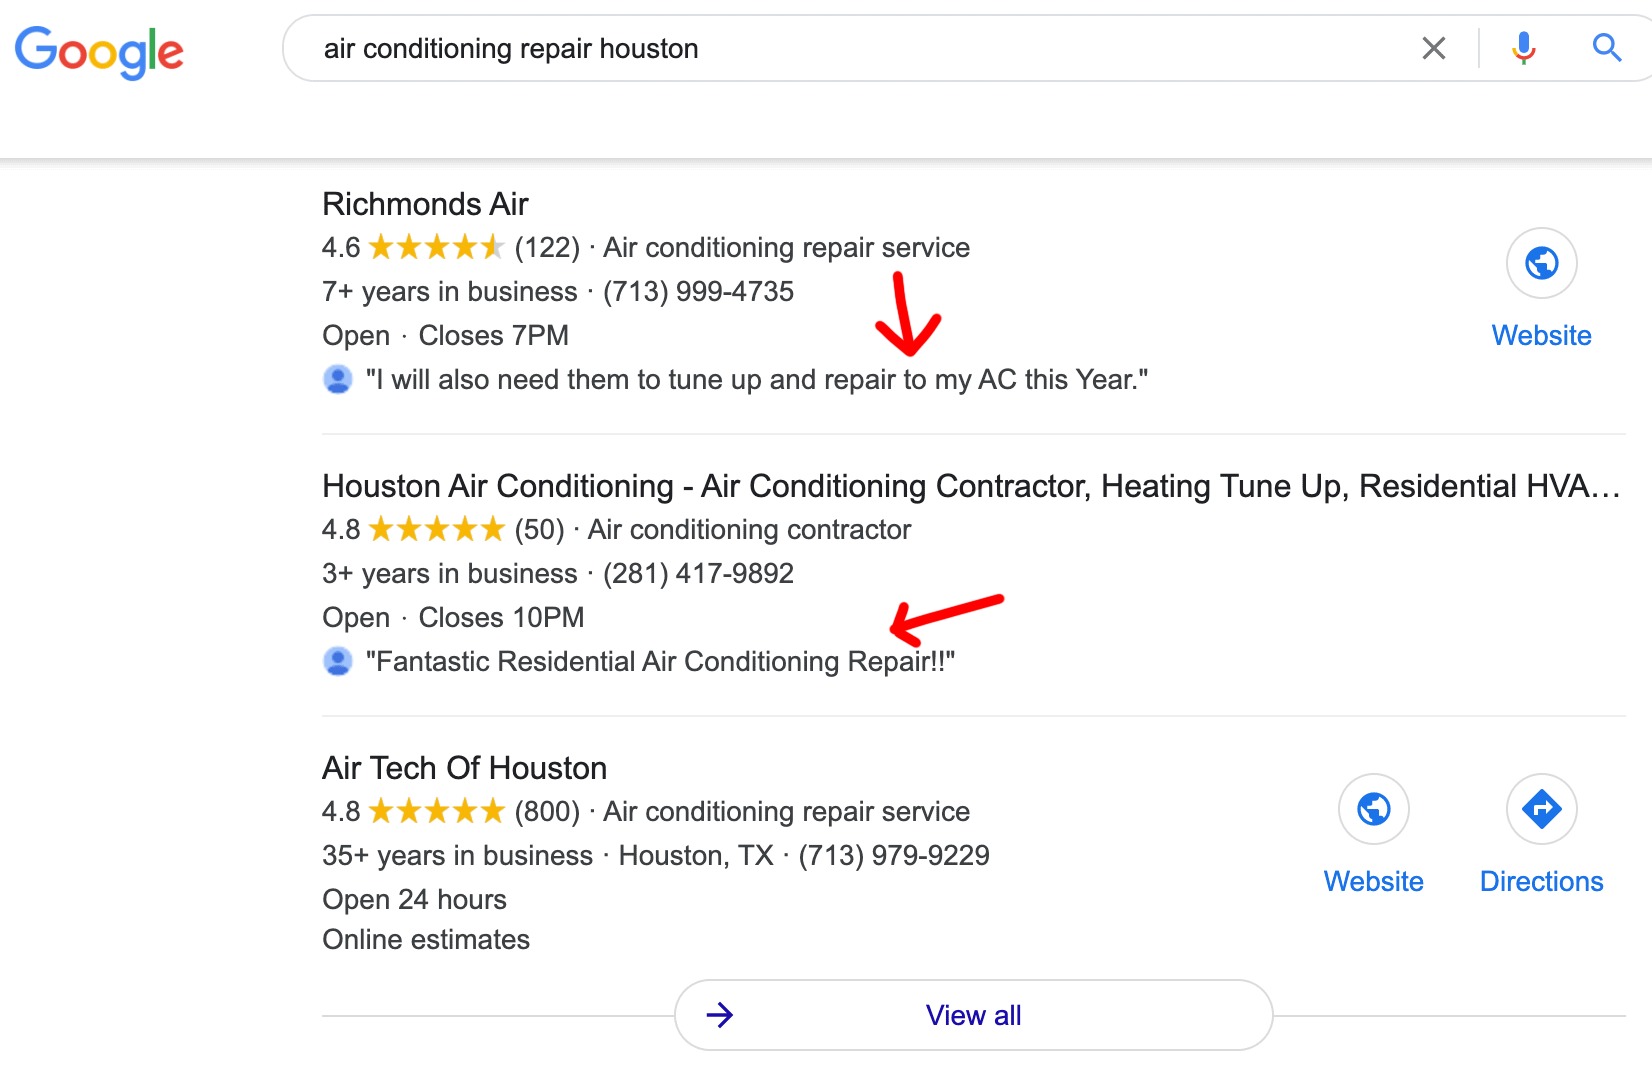 Reviews showing in Google Maps 3 pack